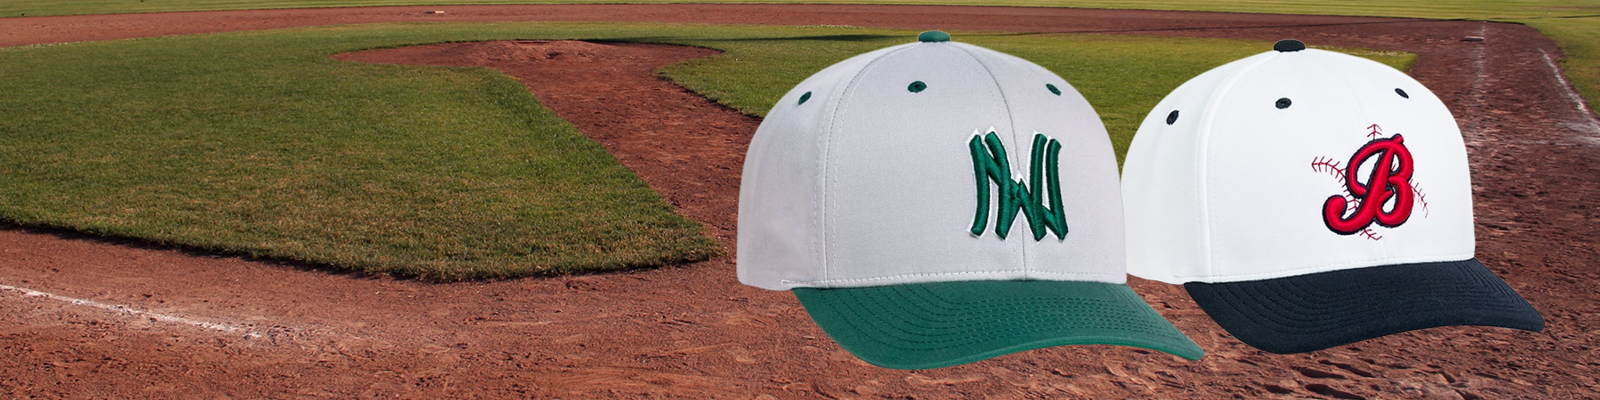 Custom Team Baseball Hats